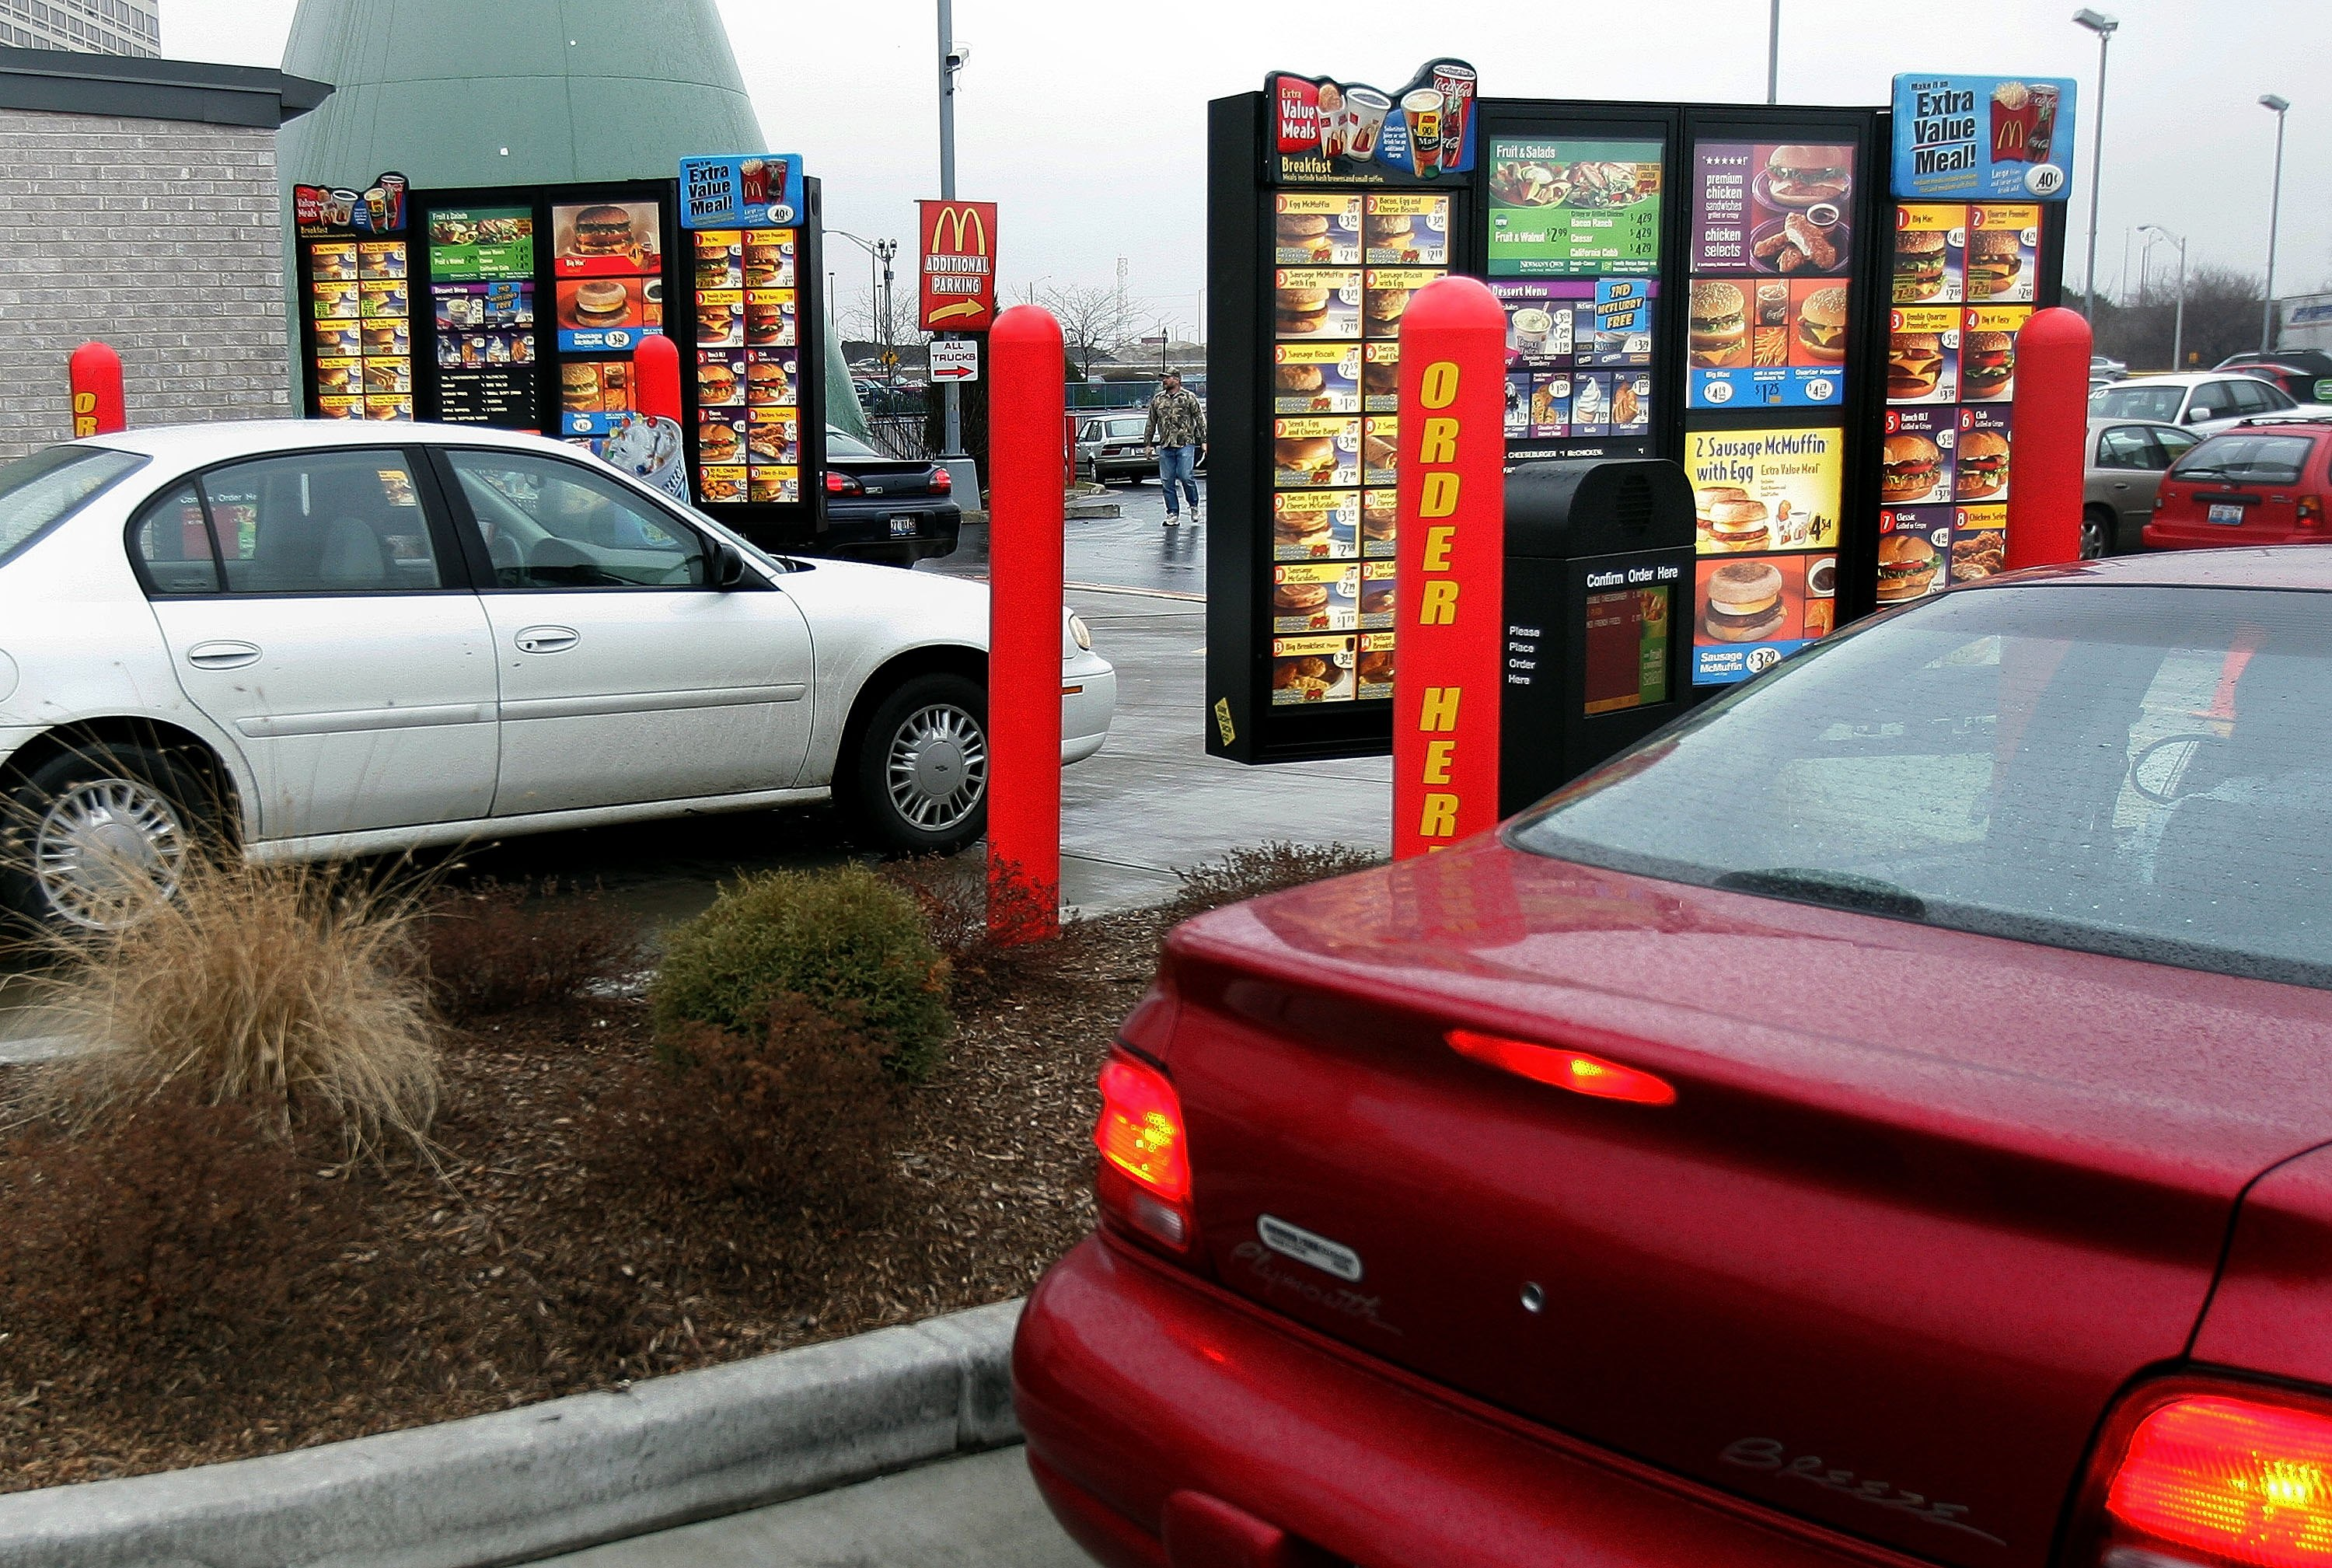 Vehicles in two separate drive-up lanes place orders at a McDonald's drive-thru location January 17, 2006 in Rosemont, Illinois. McDonald's, reportedly in an effort to satisfy consumers in a hurry for food-to-go and traffic related to such, has built dual drive-ups at some of their restaurants. (Photo by Tim Boyle/Getty Images)